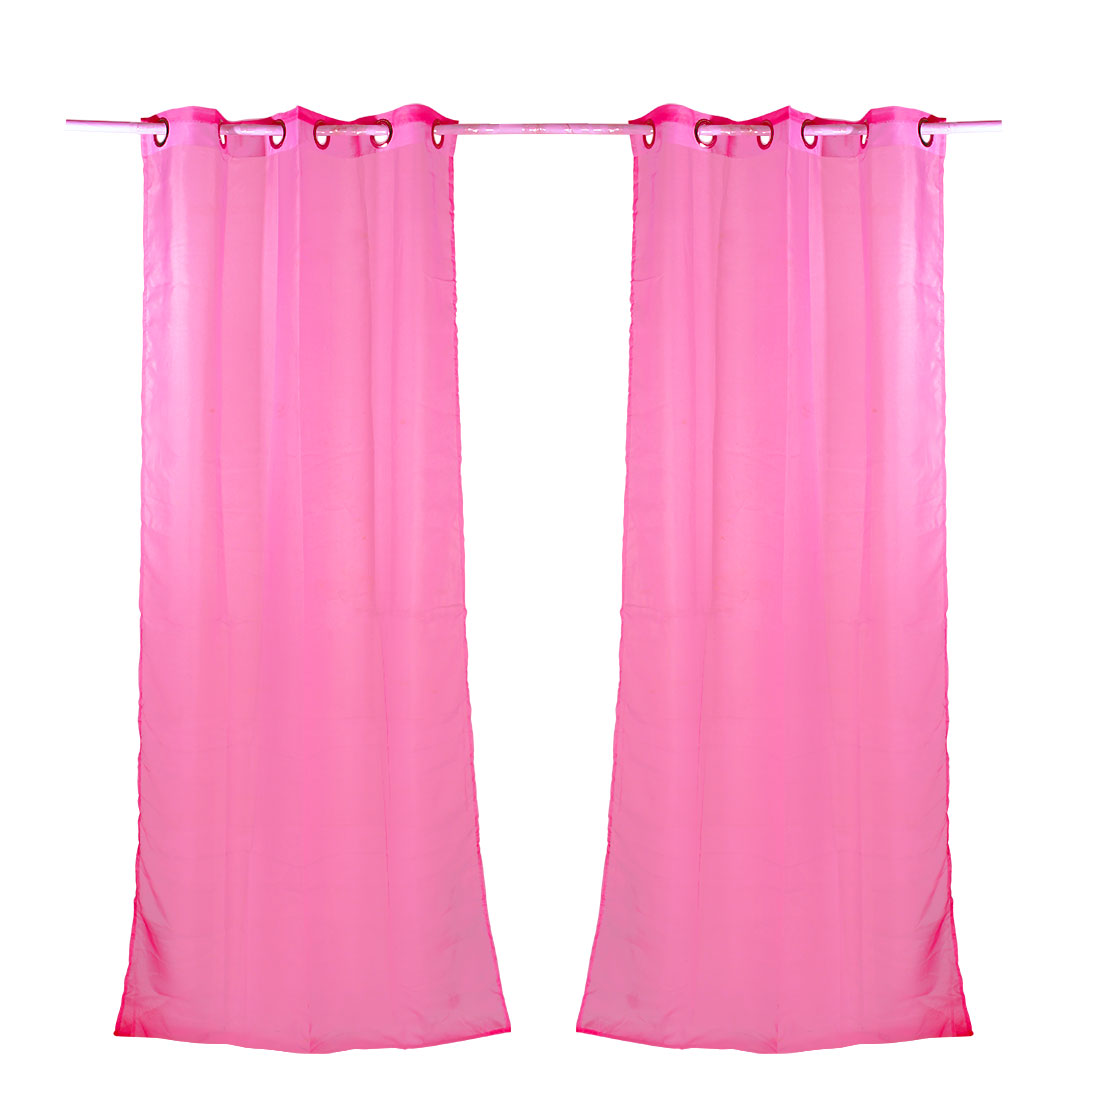 Home Decor Tulle Voile Window Drape Curtain Panel Divider Sheer Valances Pink